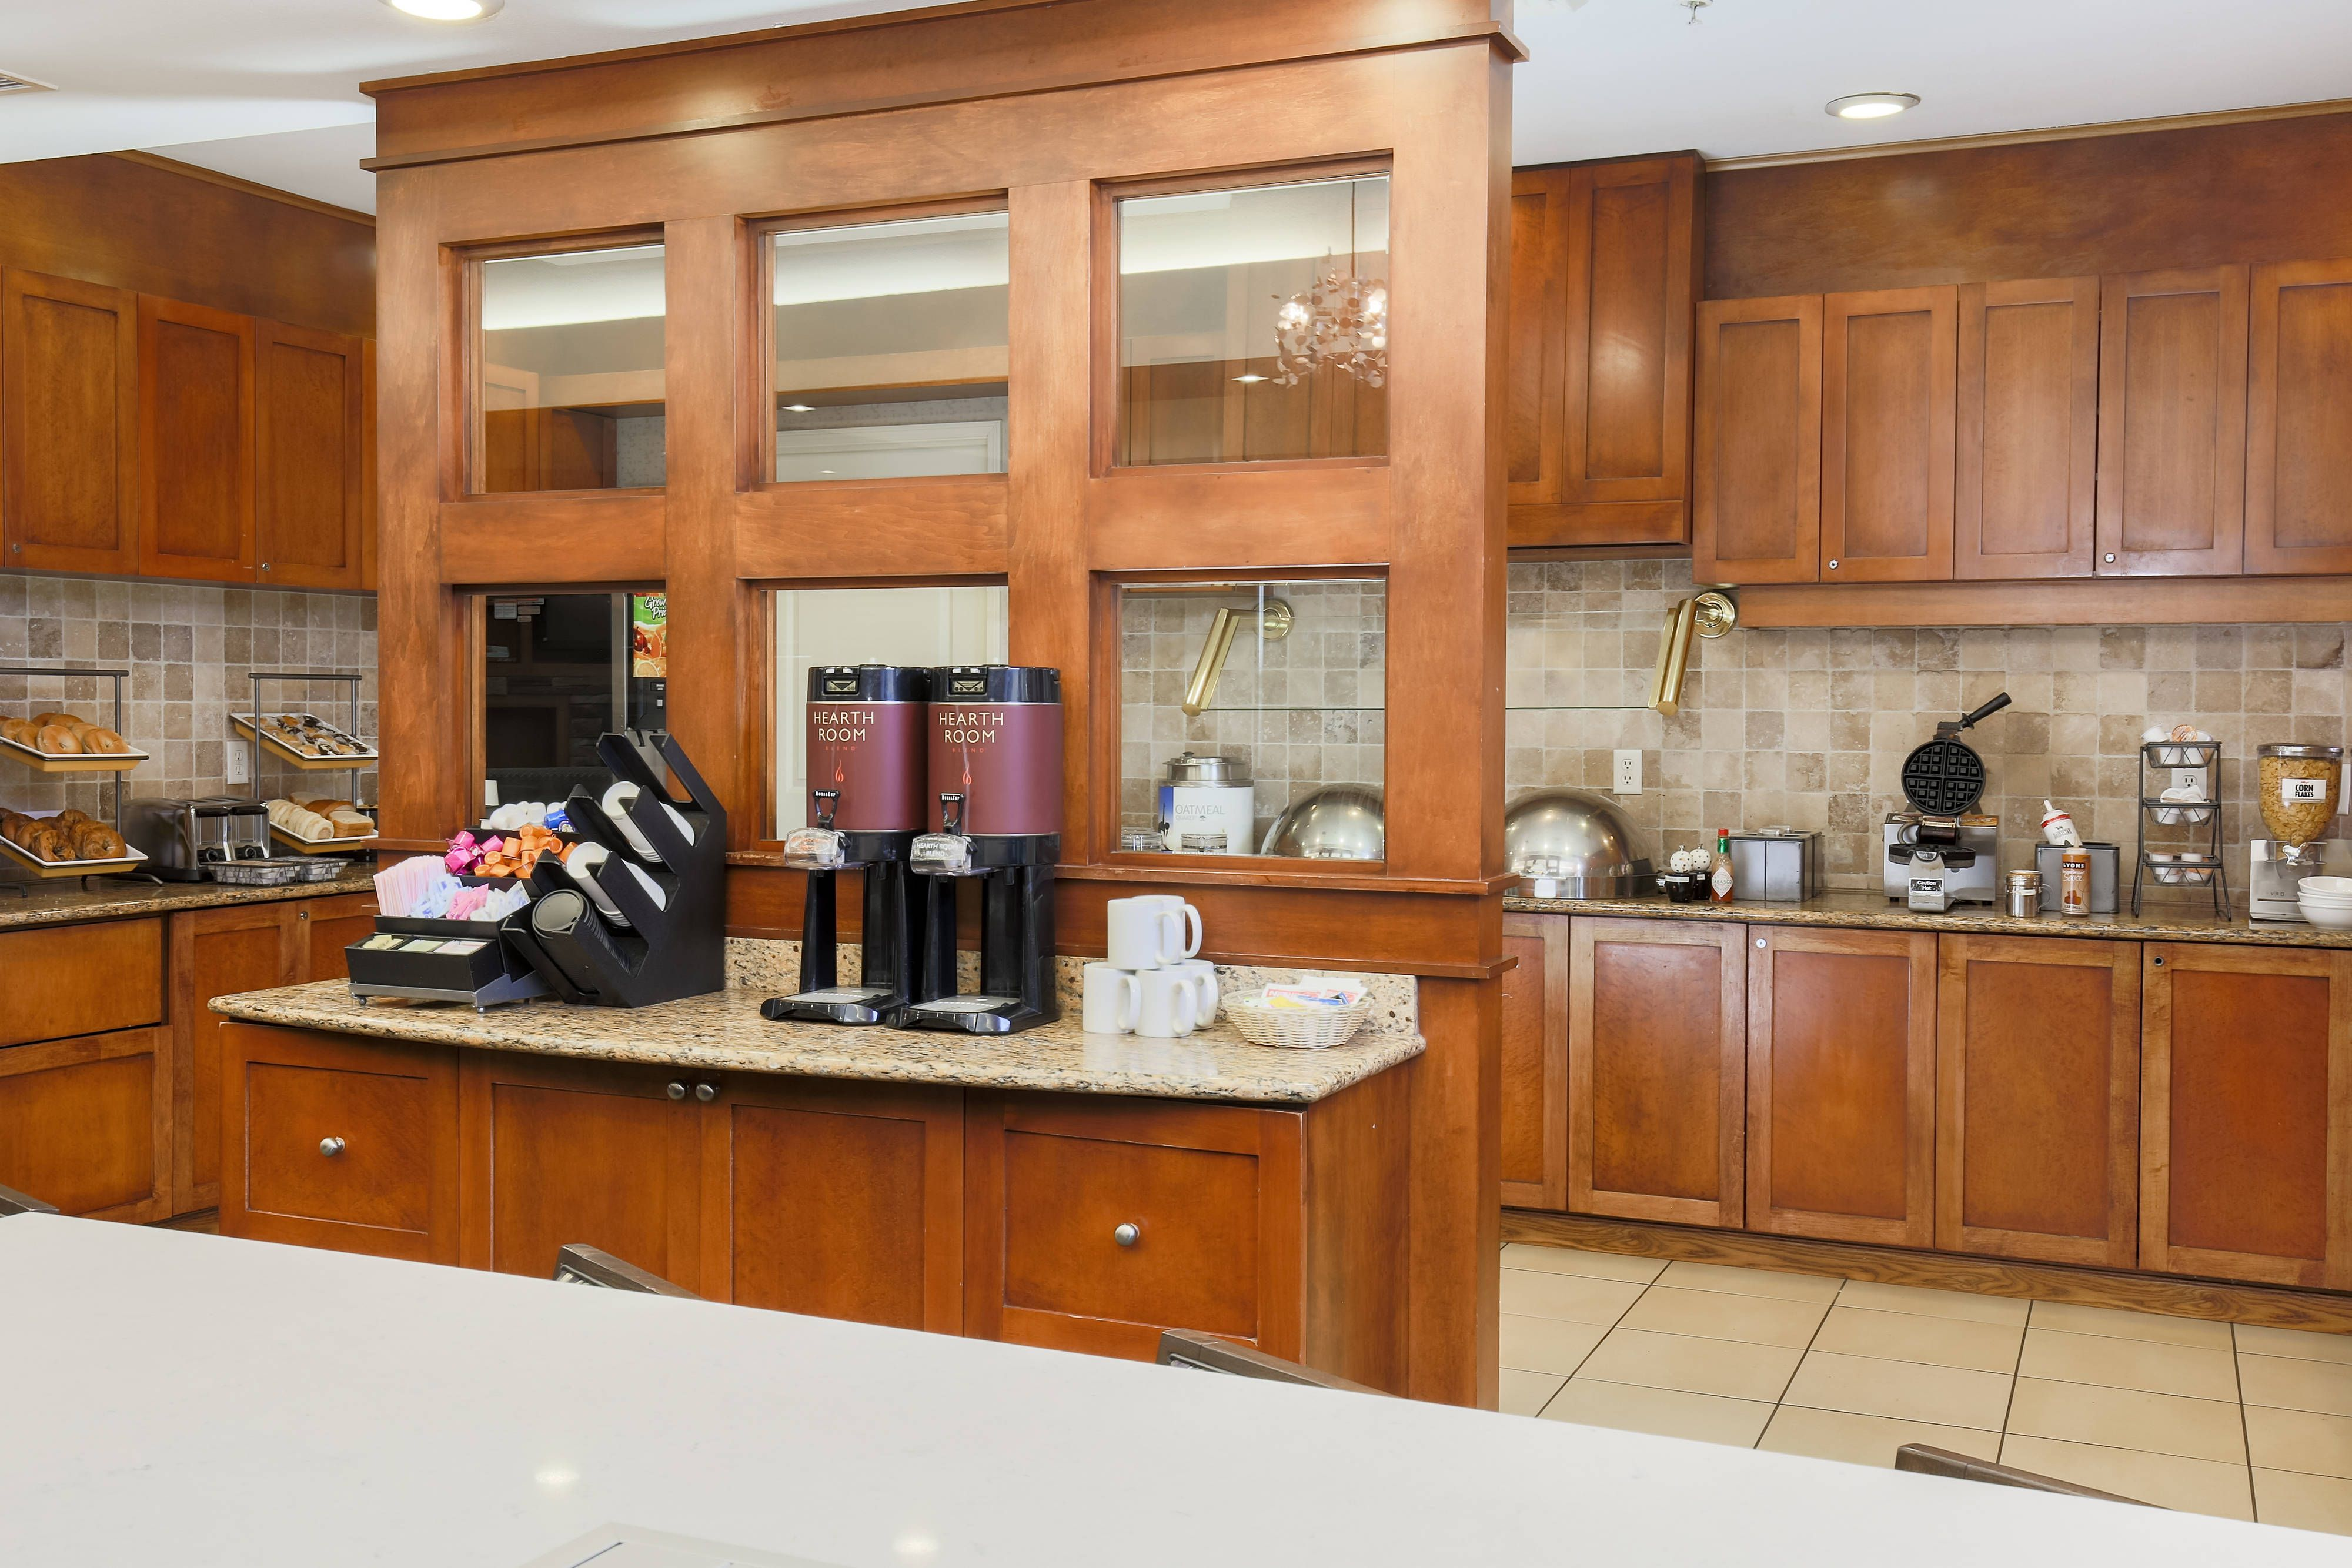 Residence Inn Chico Breakfast Buffet Suite Relax Beautiful Residences Kitchen Cabinets Inn